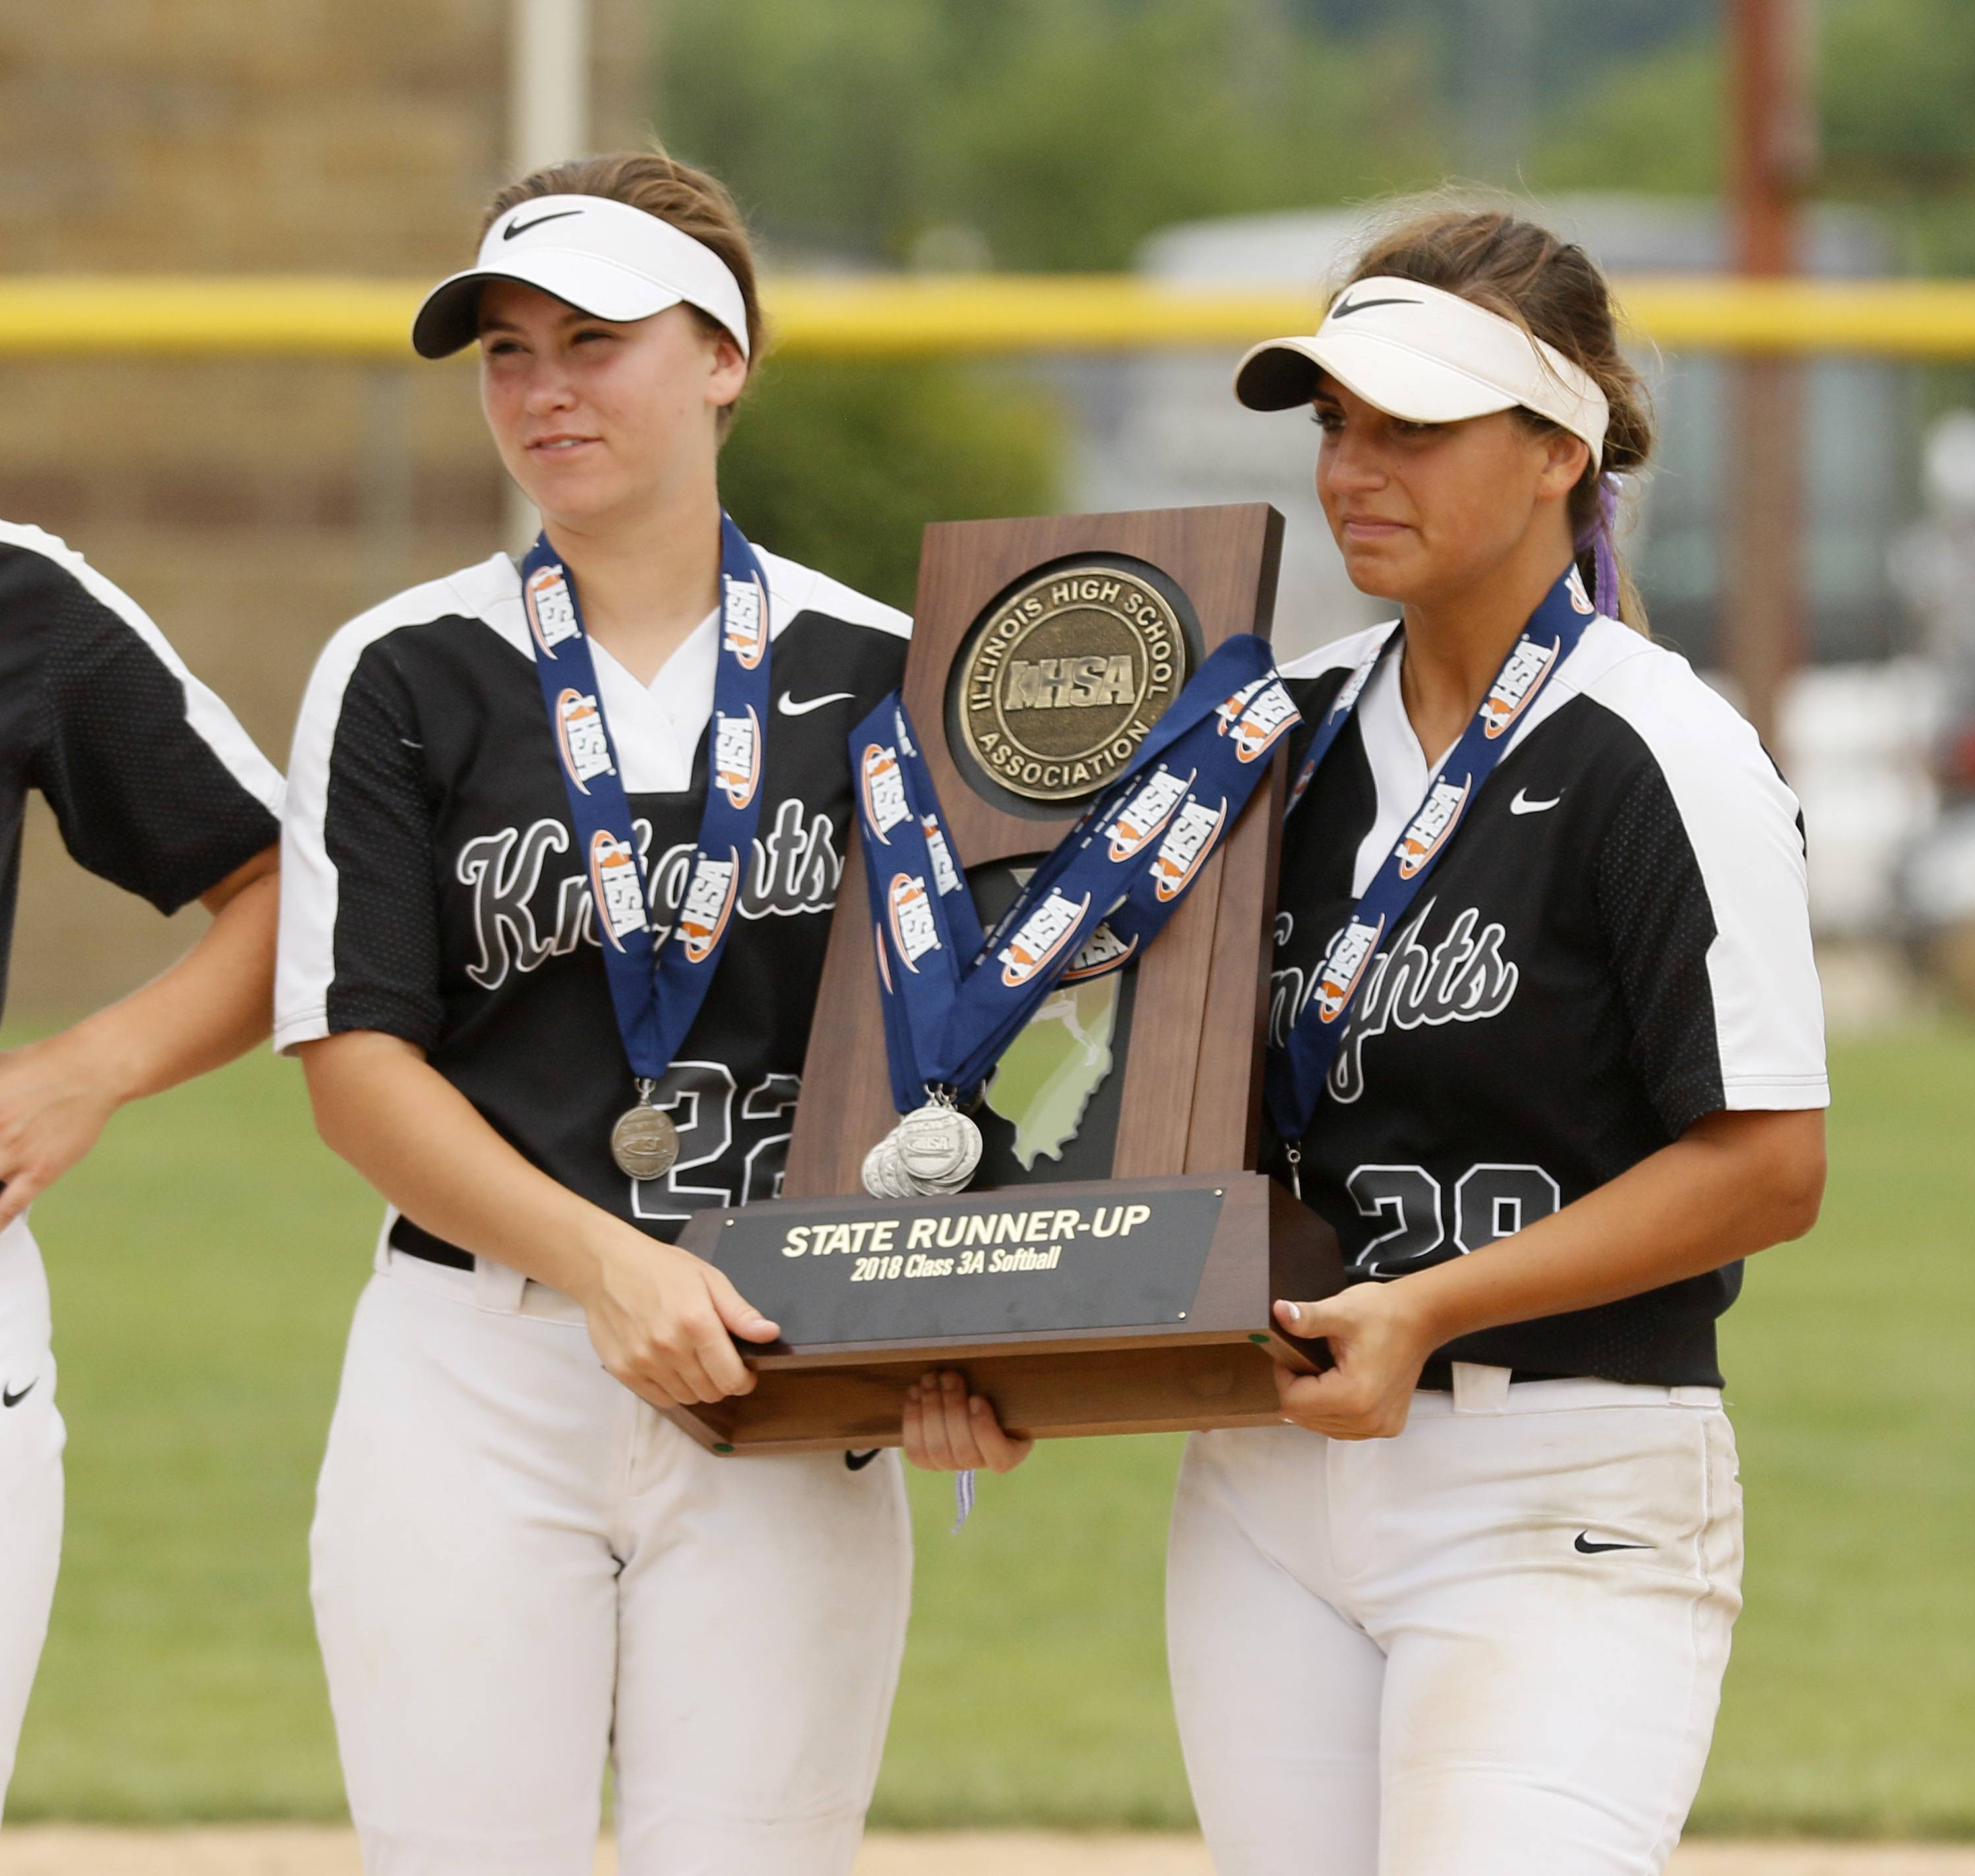 Kaneland players pose with the second place trophy following the IHSA Class 3A state softball championship.